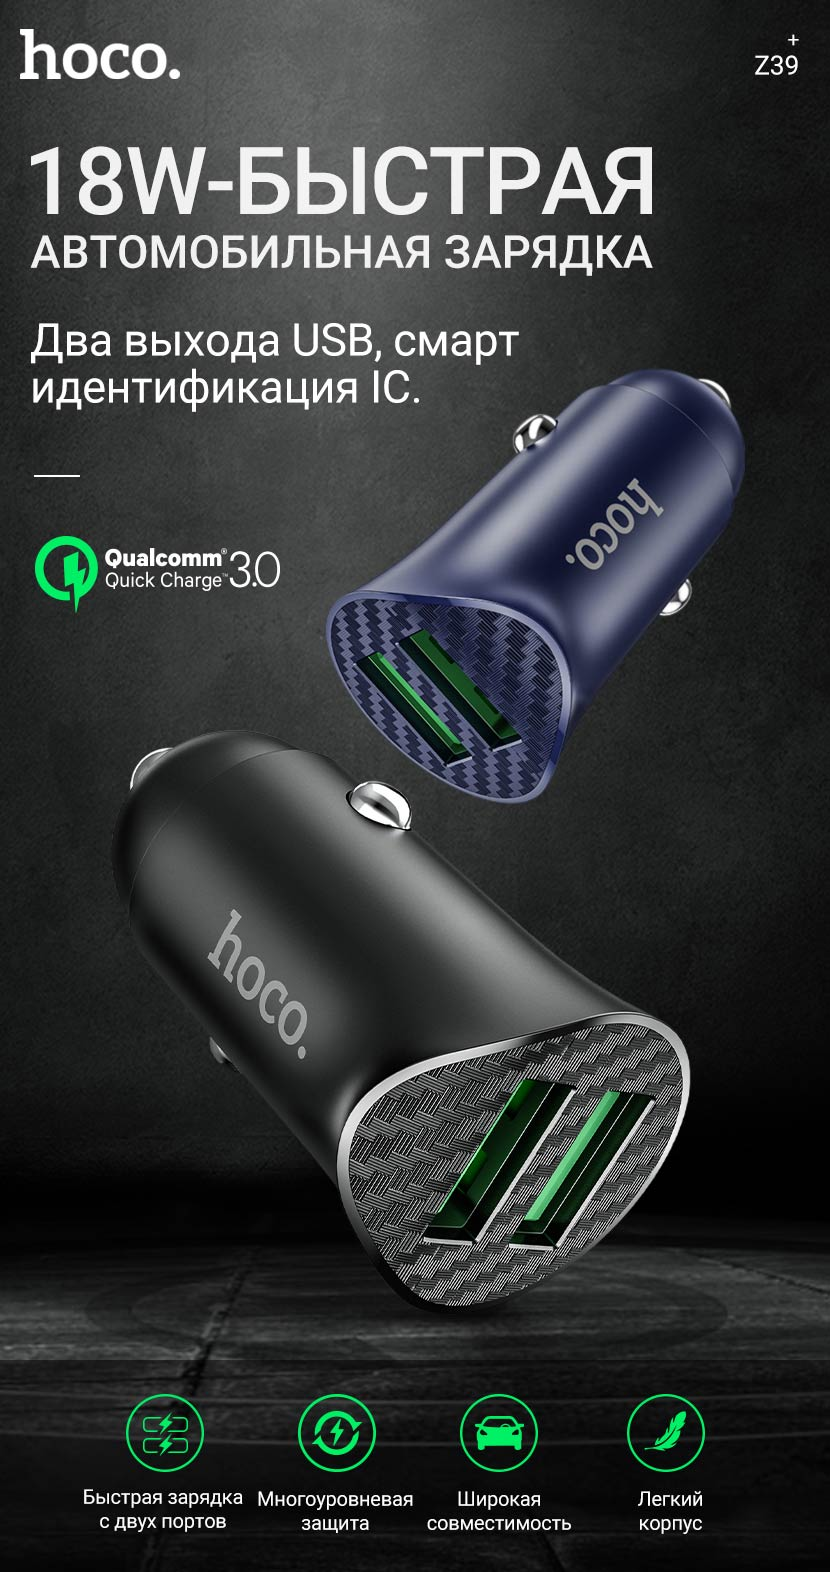 hoco news z39 farsighted dual port qc3.0 car charger 18w ru